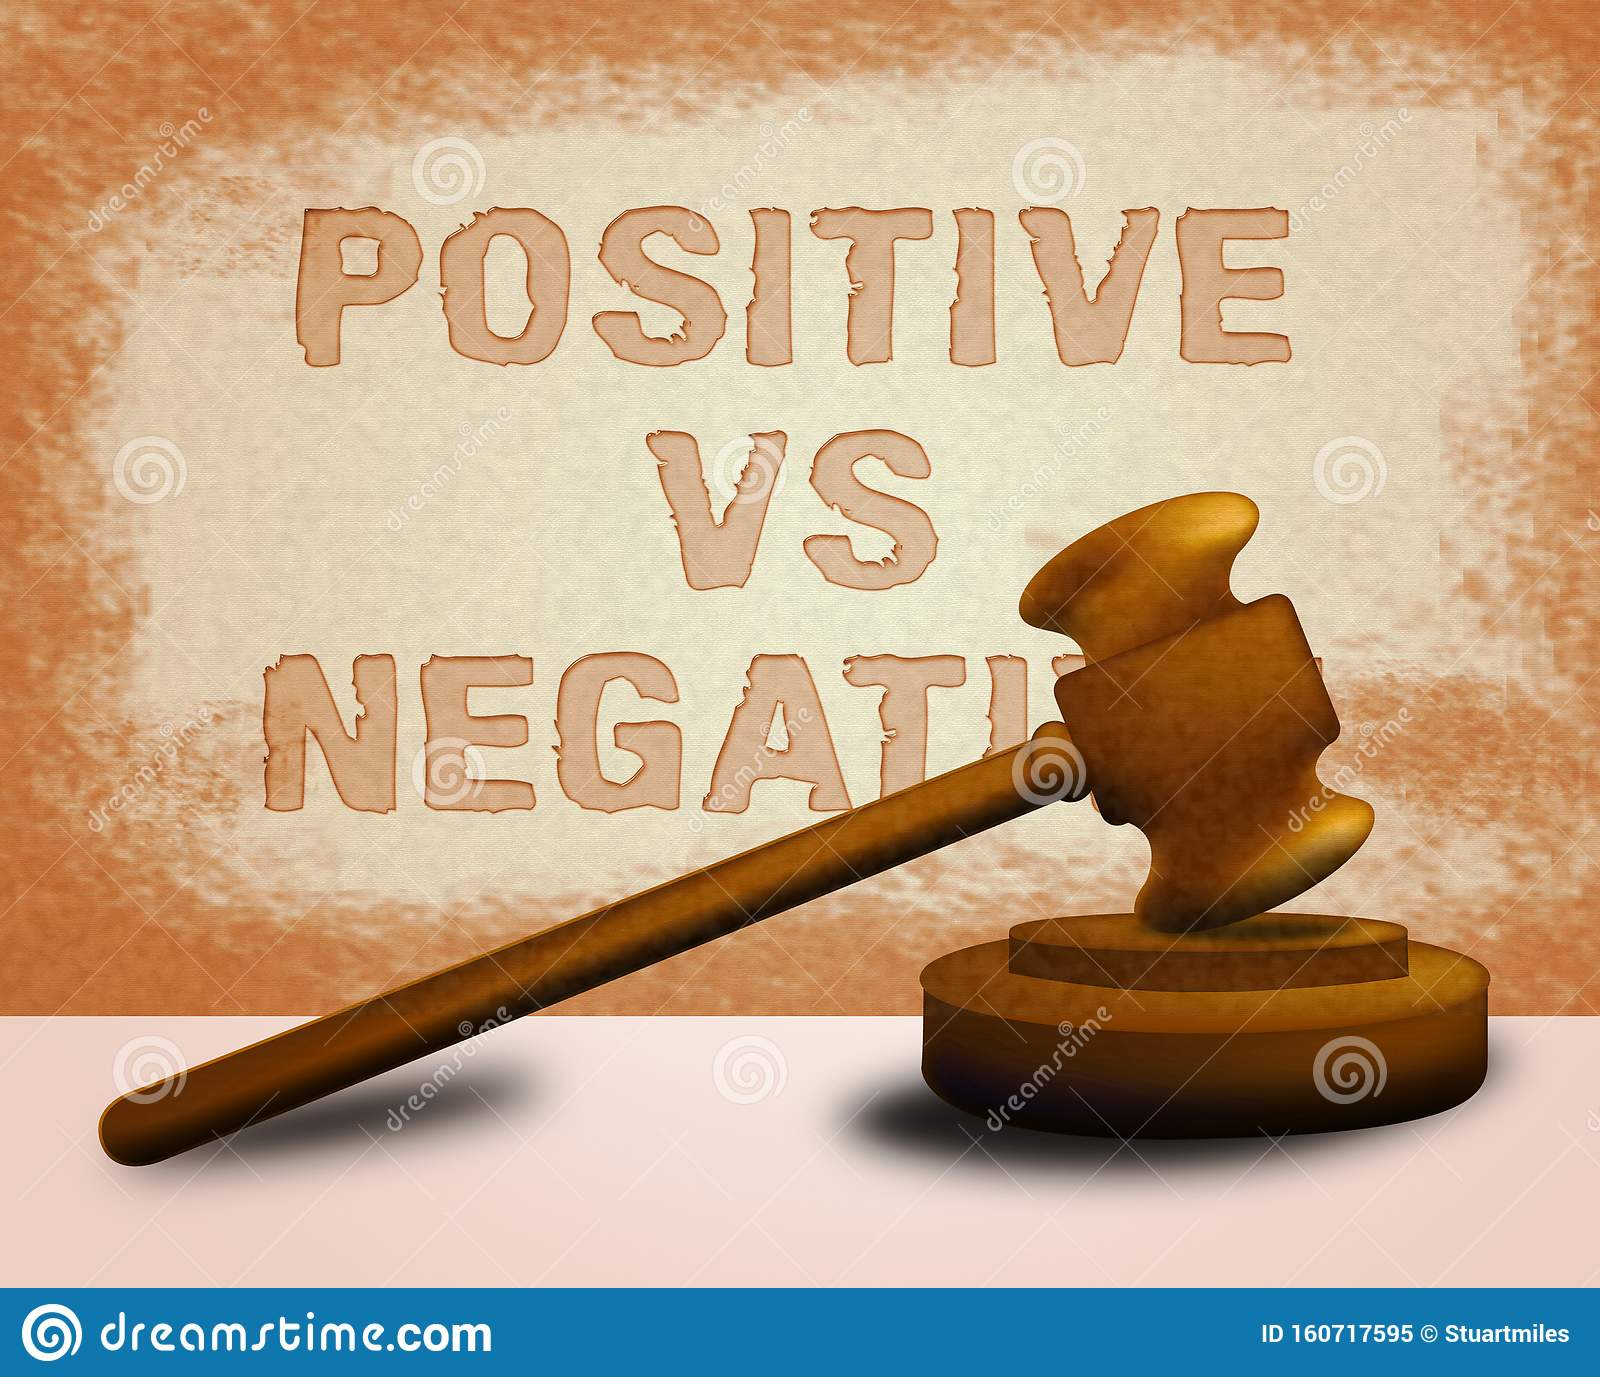 Positive Vs Negative Icon Depicting Reflective State Of